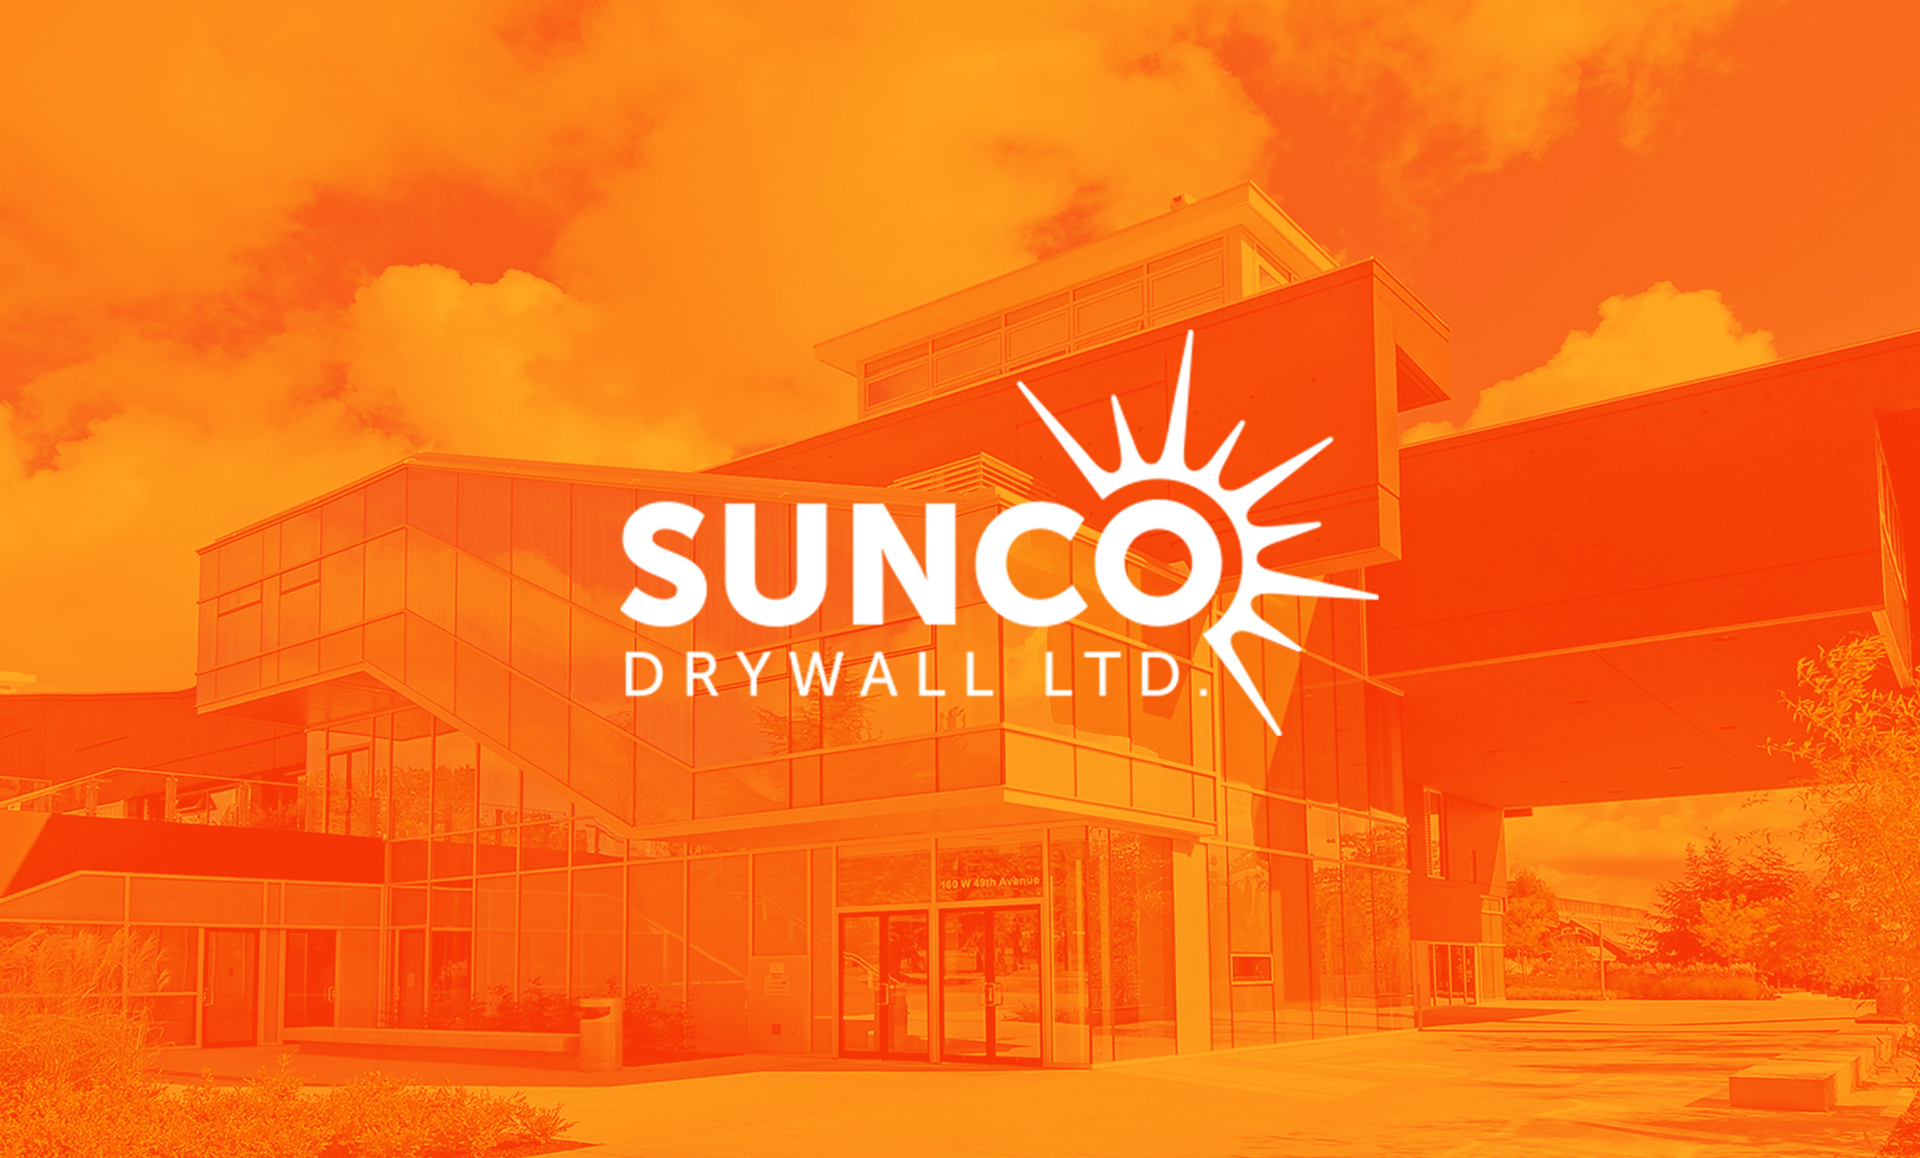 Read more on Sunco Drywall